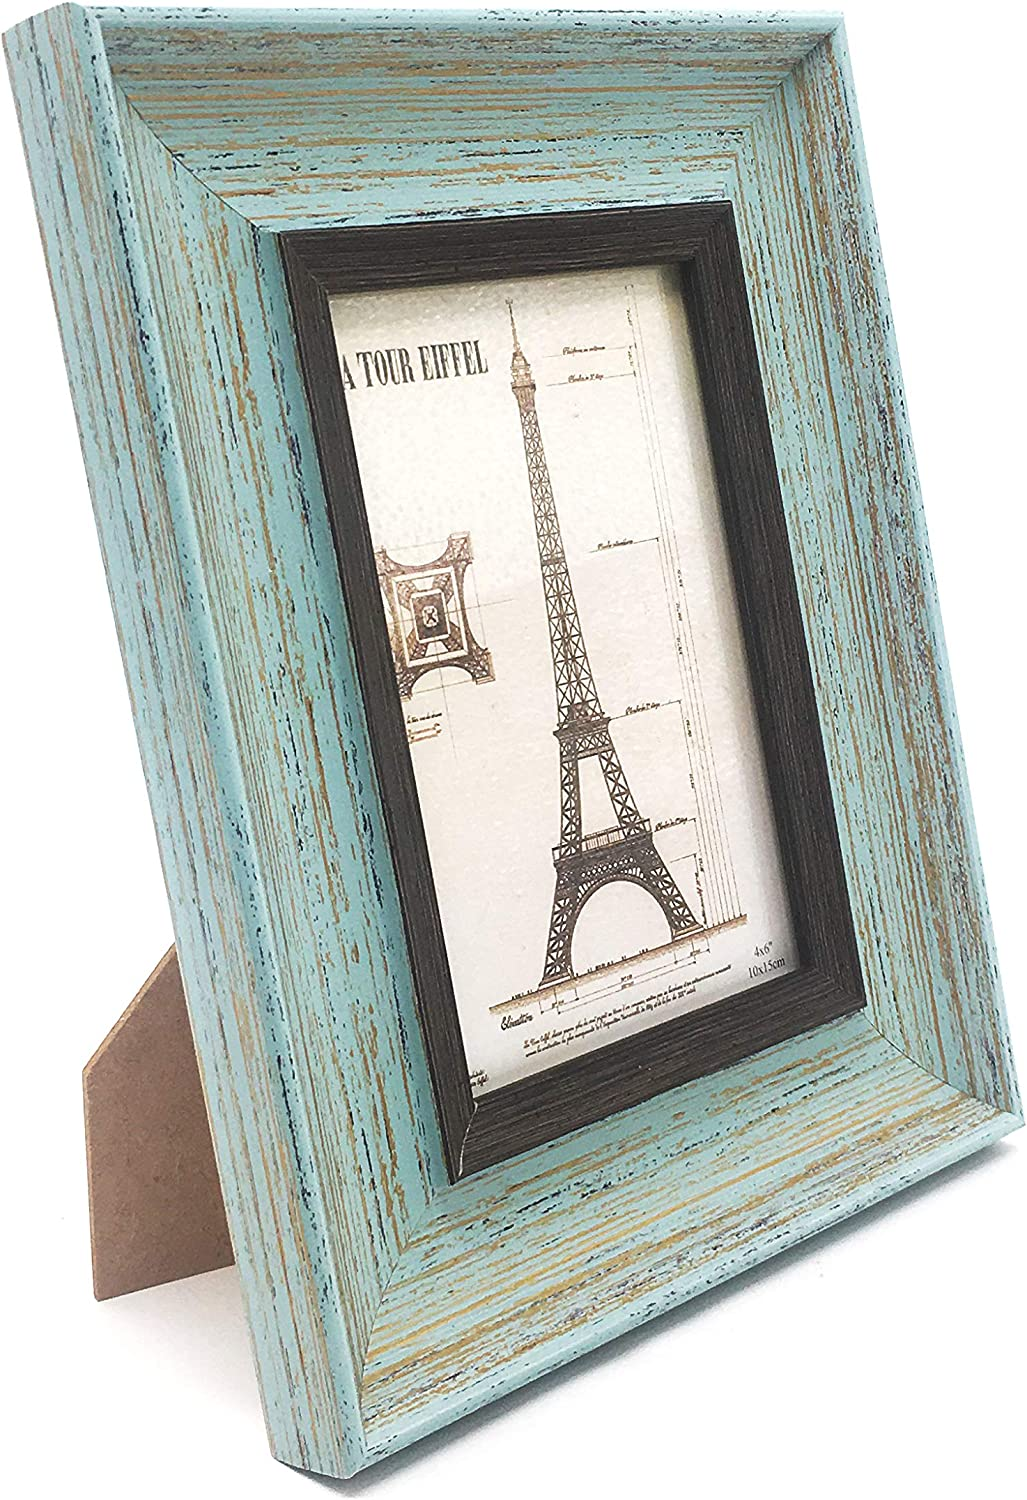 allgala 3-Pack Wood Imitation Desktop Photo Frames with Glass Face - 4X6 Inch - Country Green Style - HD61014